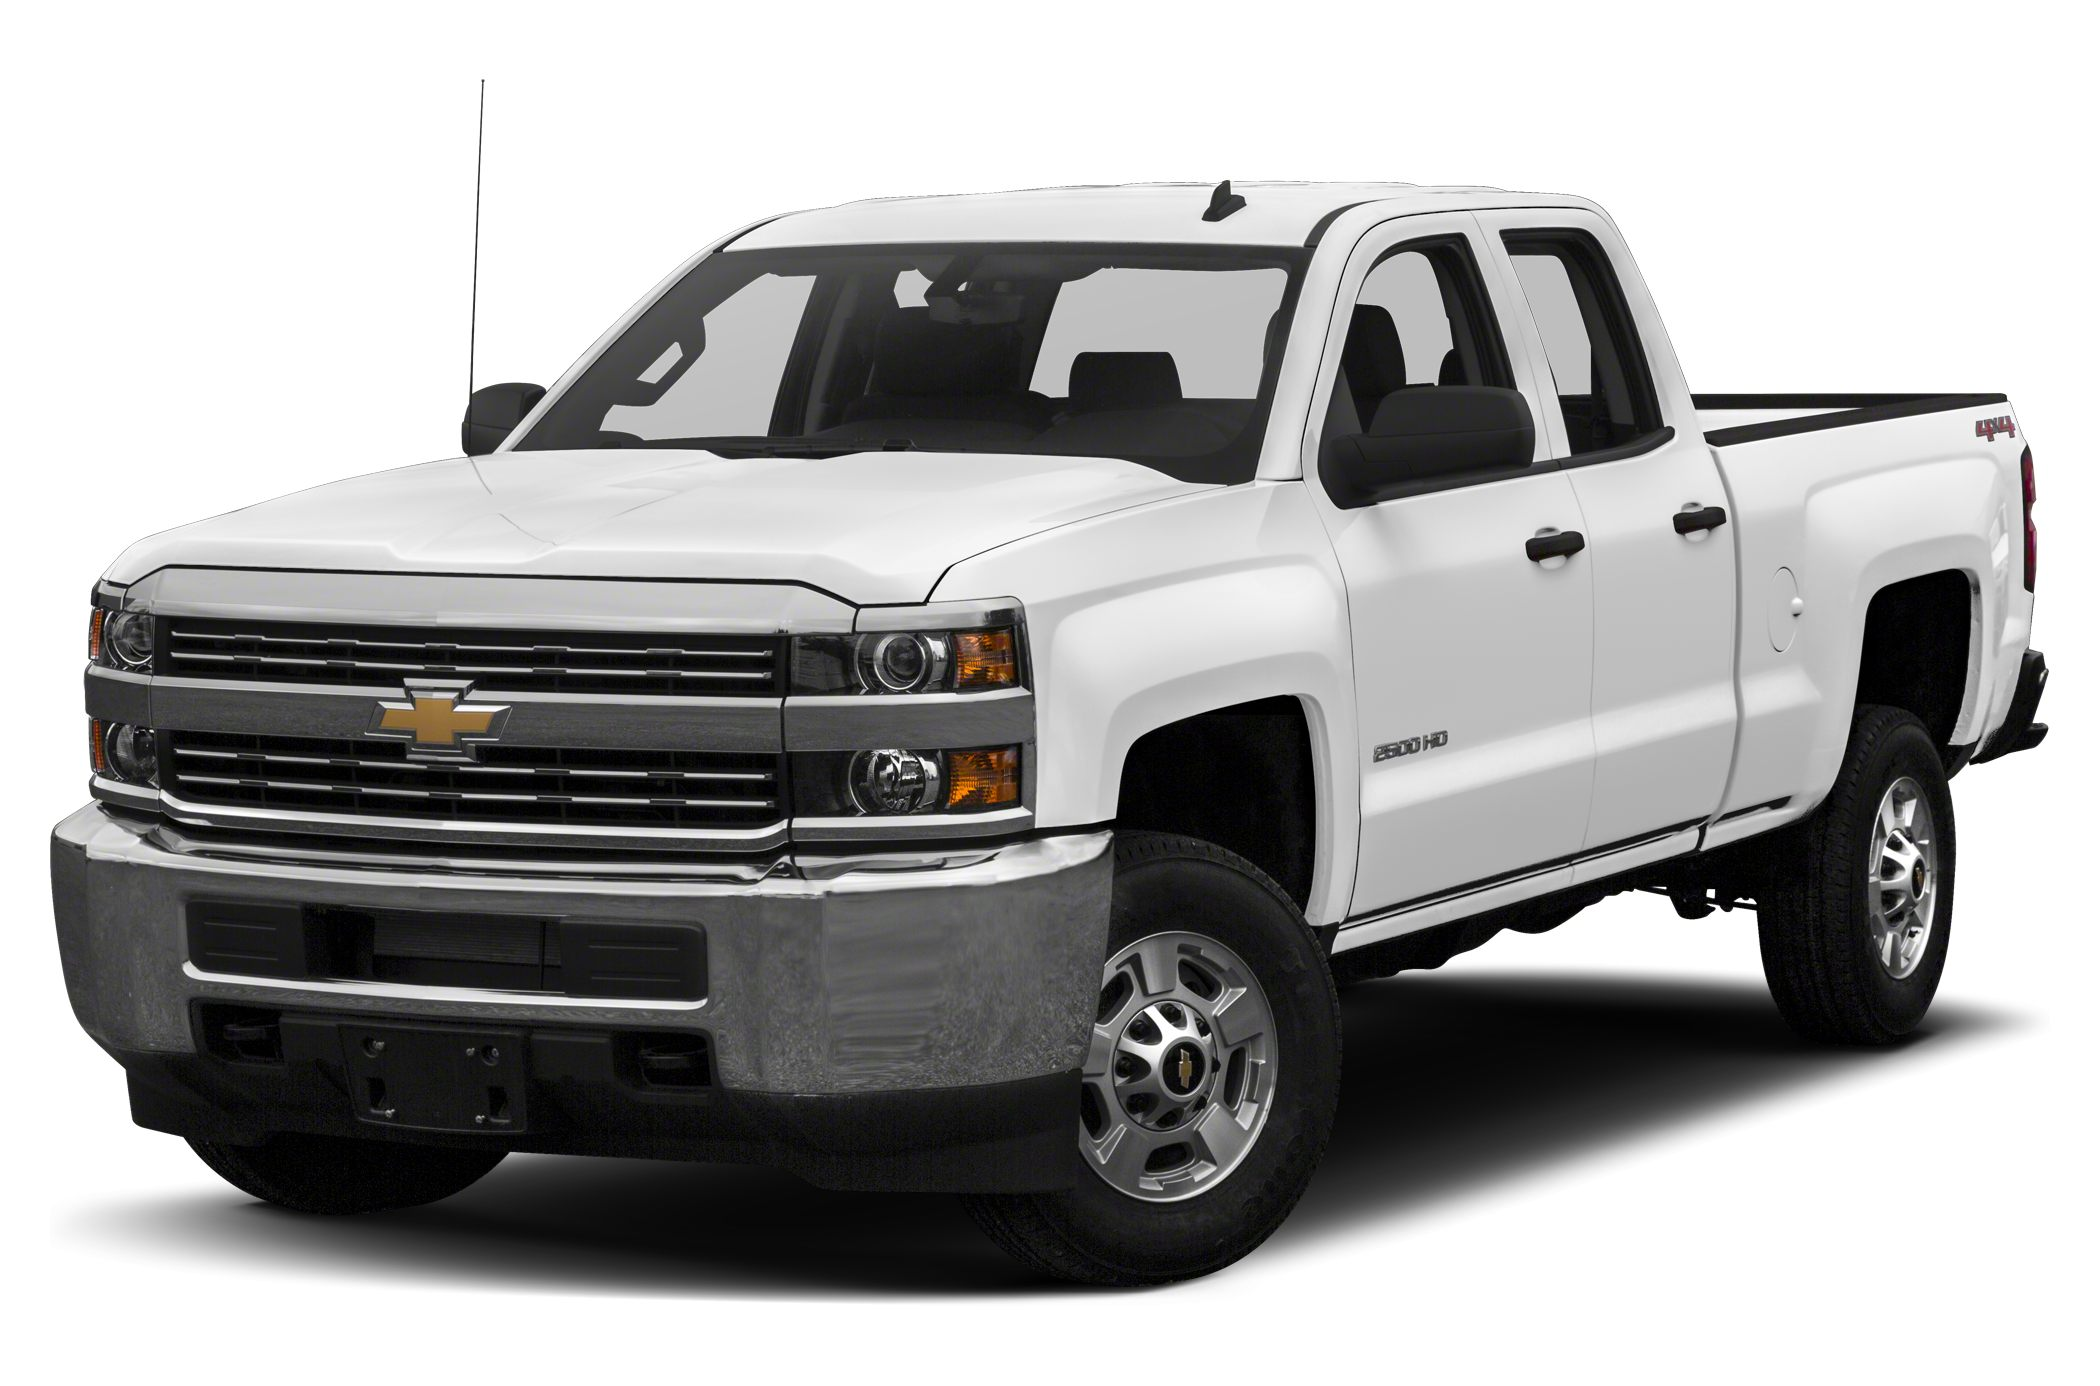 2015 Chevrolet Silverado 3500 LT Crew Cab Pickup for sale in Tahlequah for $60,470 with 5 miles